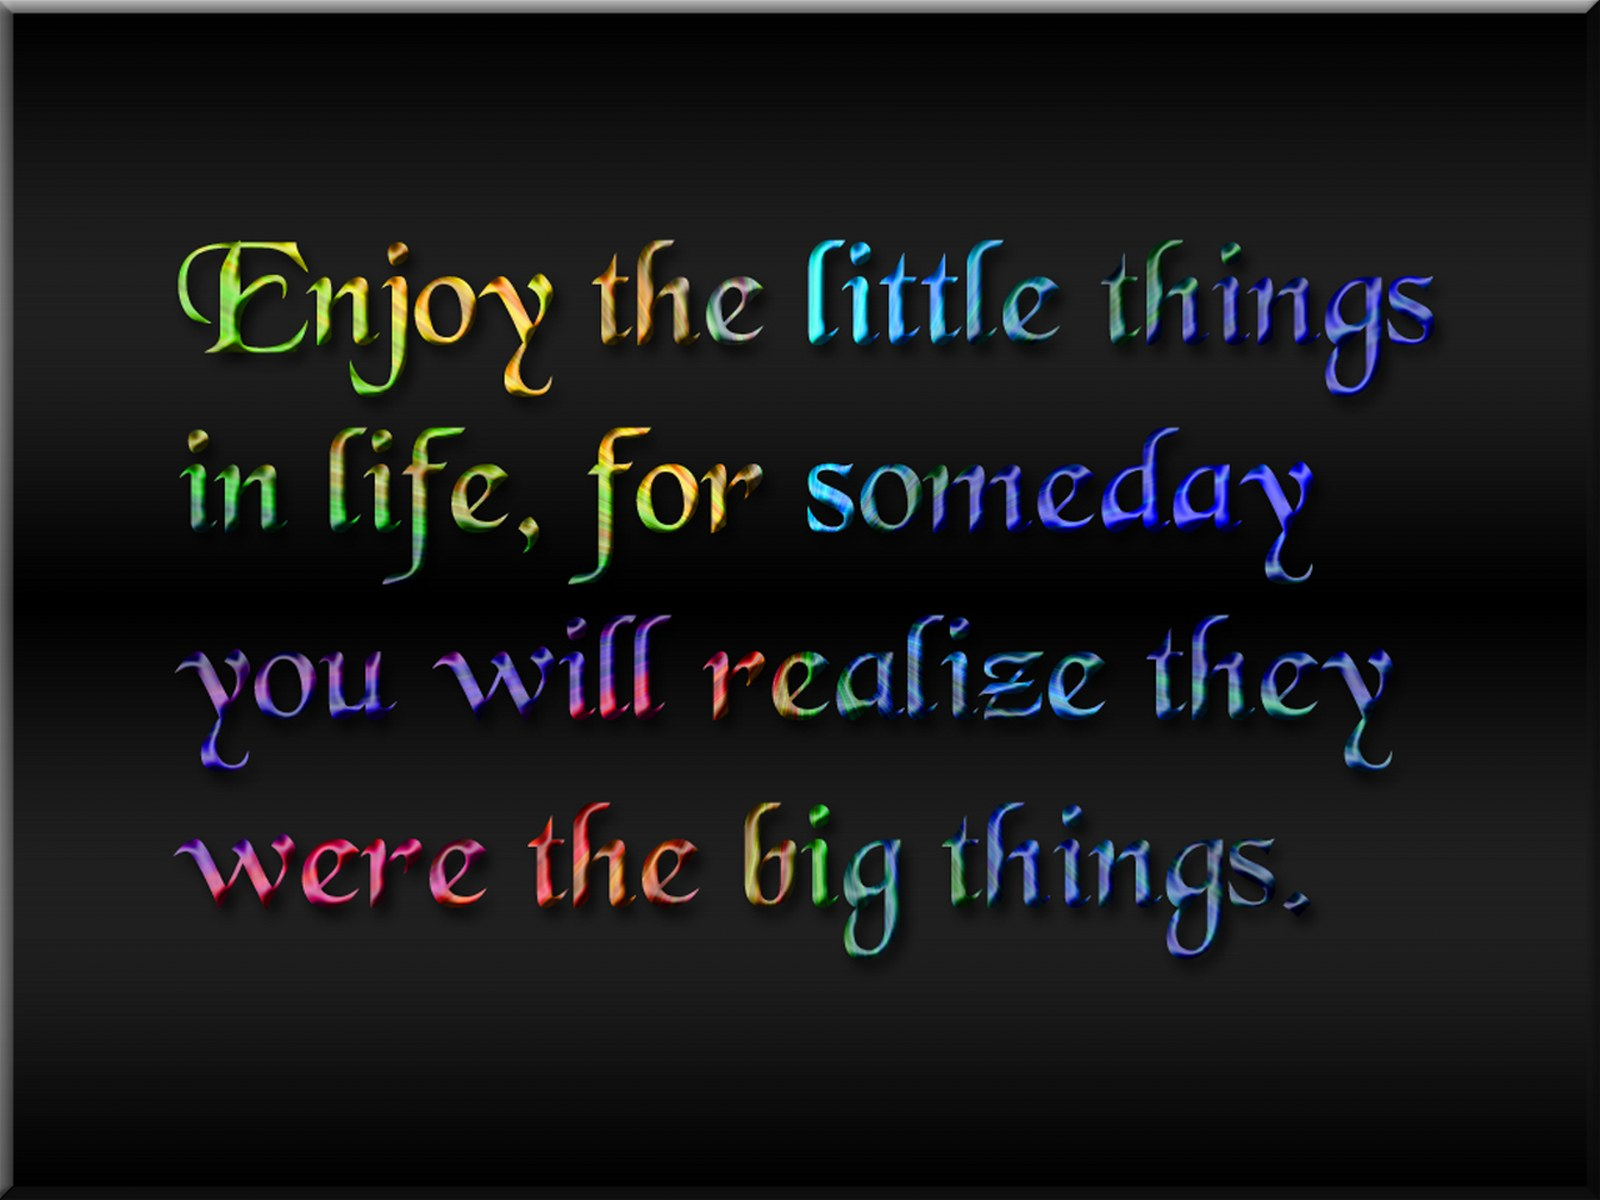 life quote desktop wallpaper - photo #16